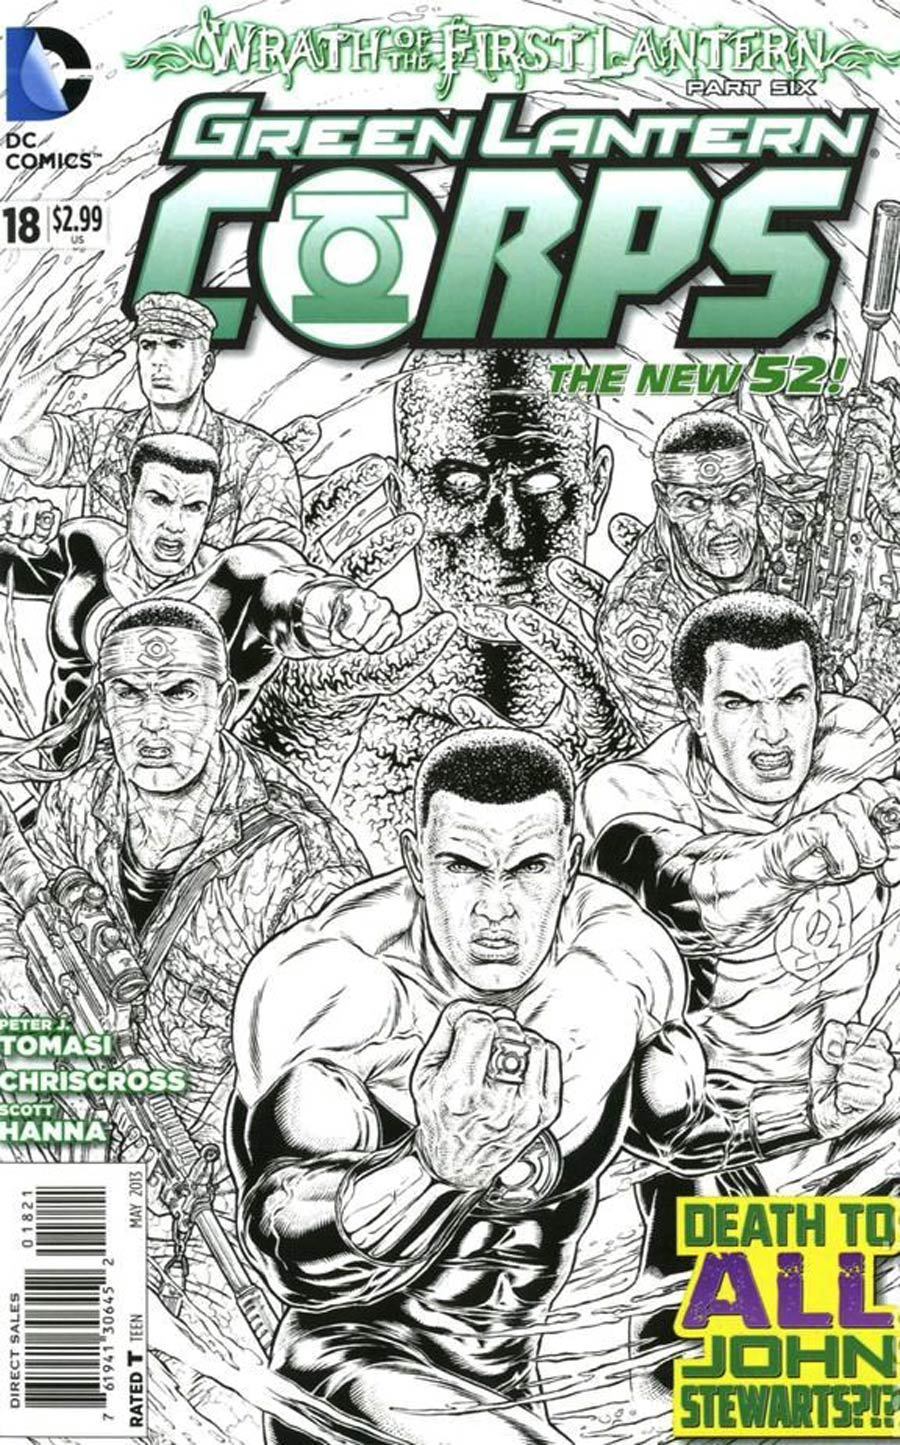 Green Lantern Corps Vol 3 #18 Cover B Incentive Juan Jose Ryp Sketch Cover (Wrath Of The First Lantern Tie-In)